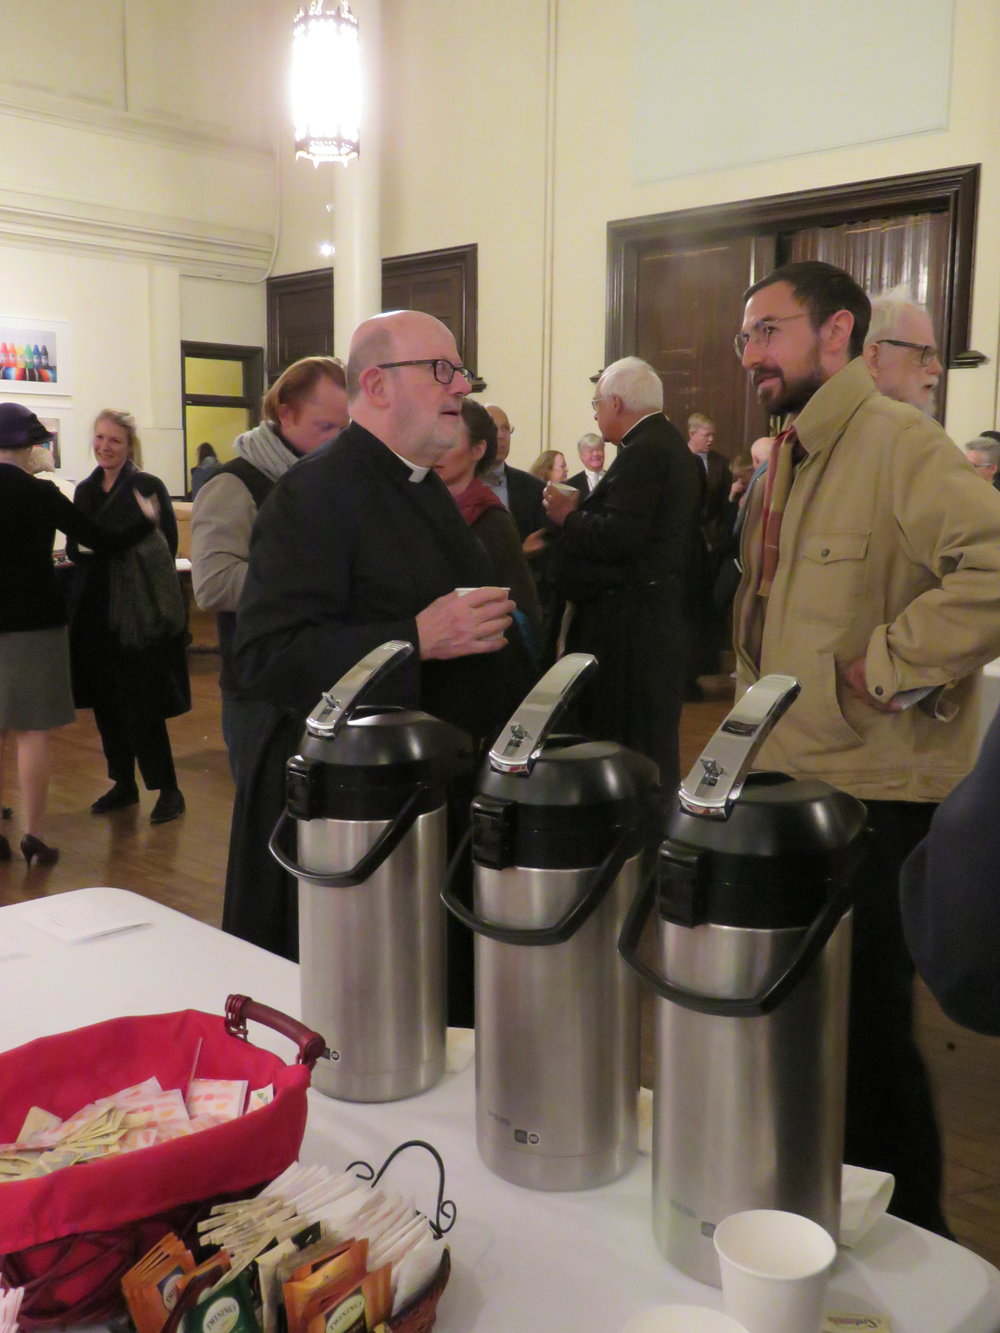 Fr. Jay Smith and Peter Ruane at Coffee Hour following the Solemn Mass.   Photo by Br. Damien Joseph SSF